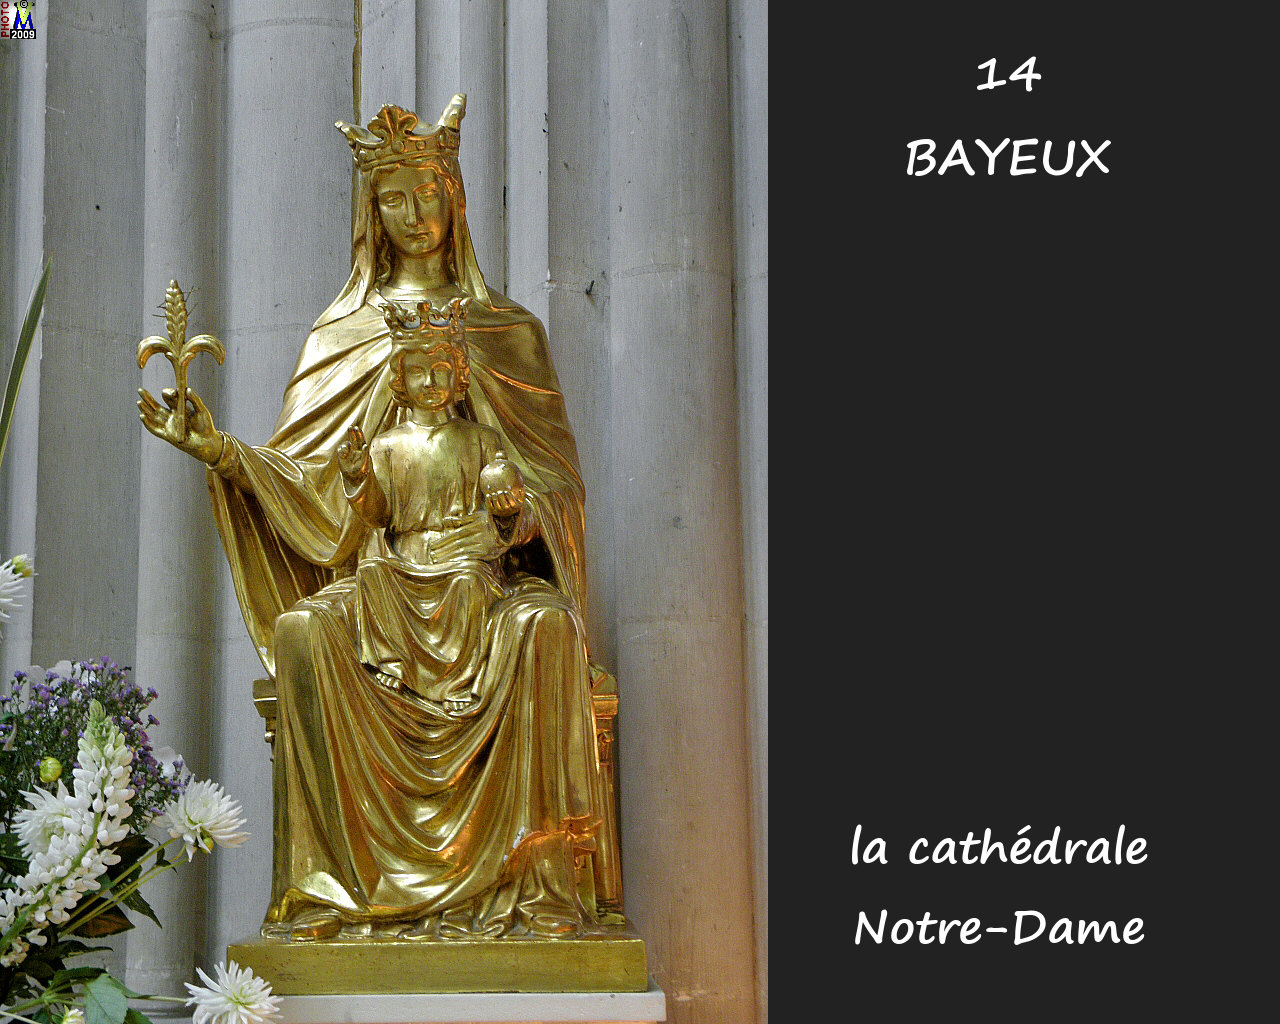 14BAYEUX_cathedrale_264.jpg